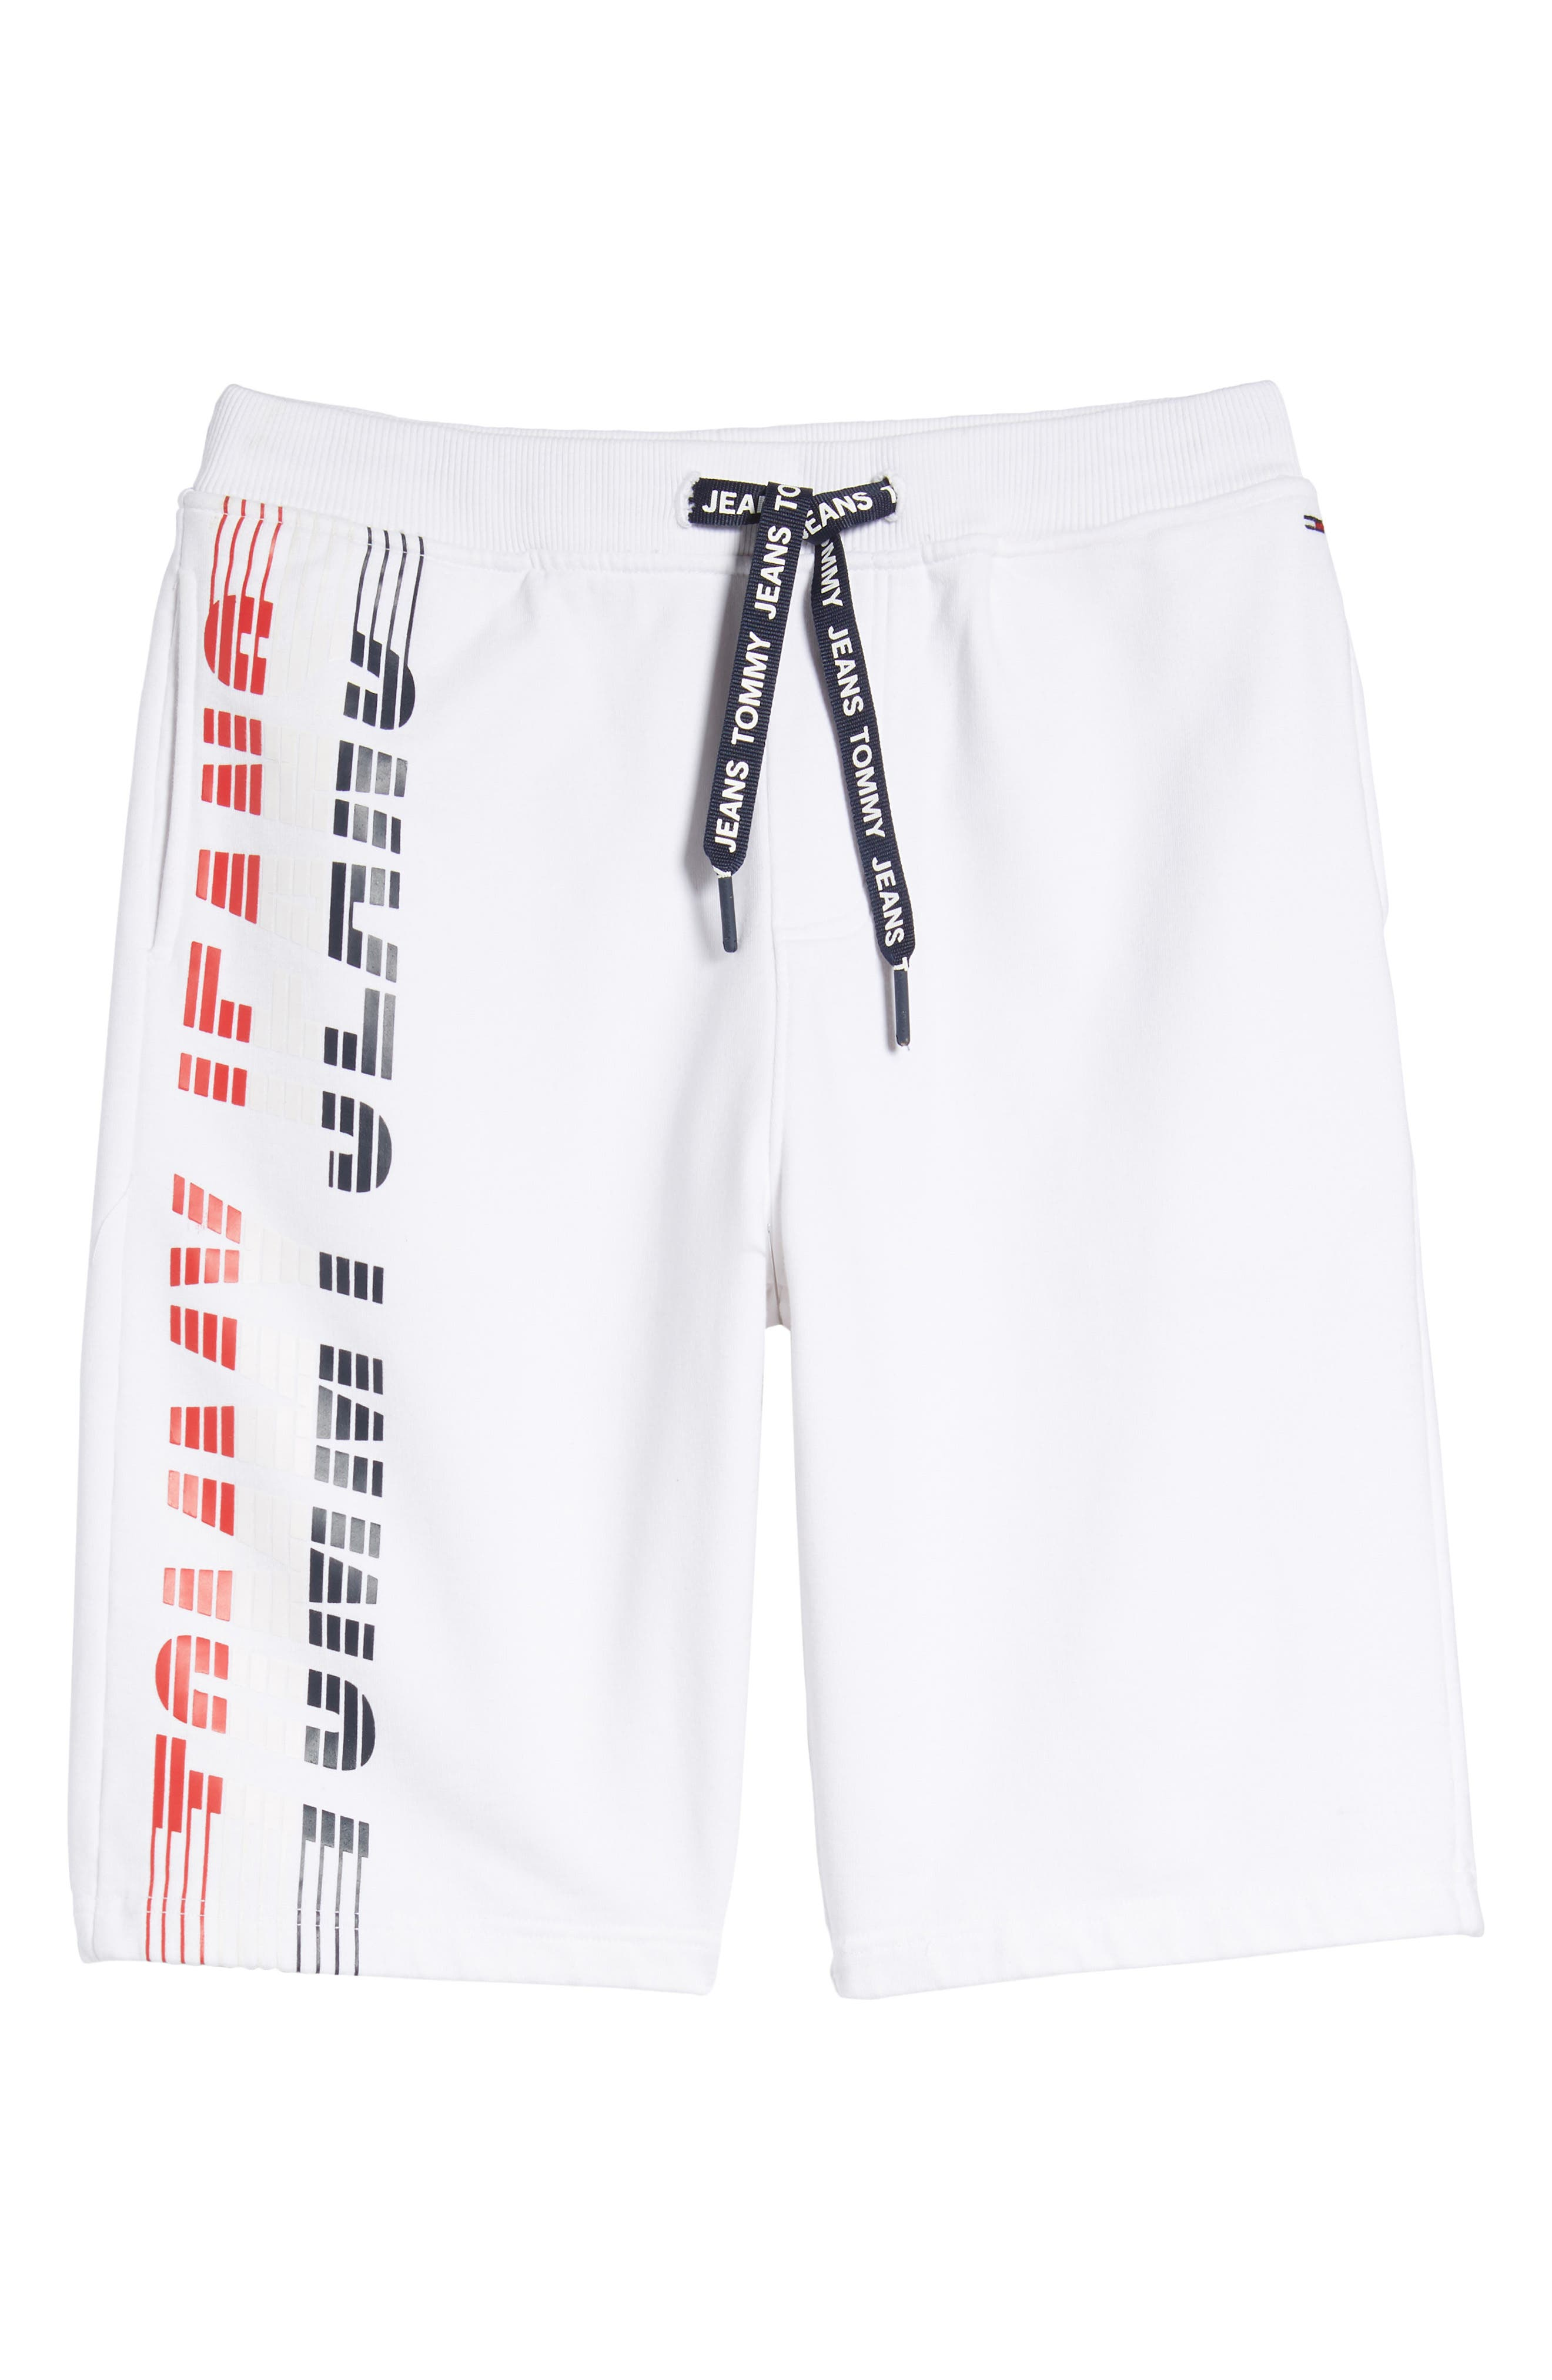 Vintage Graphic Basketball Shorts,                             Alternate thumbnail 6, color,                             100